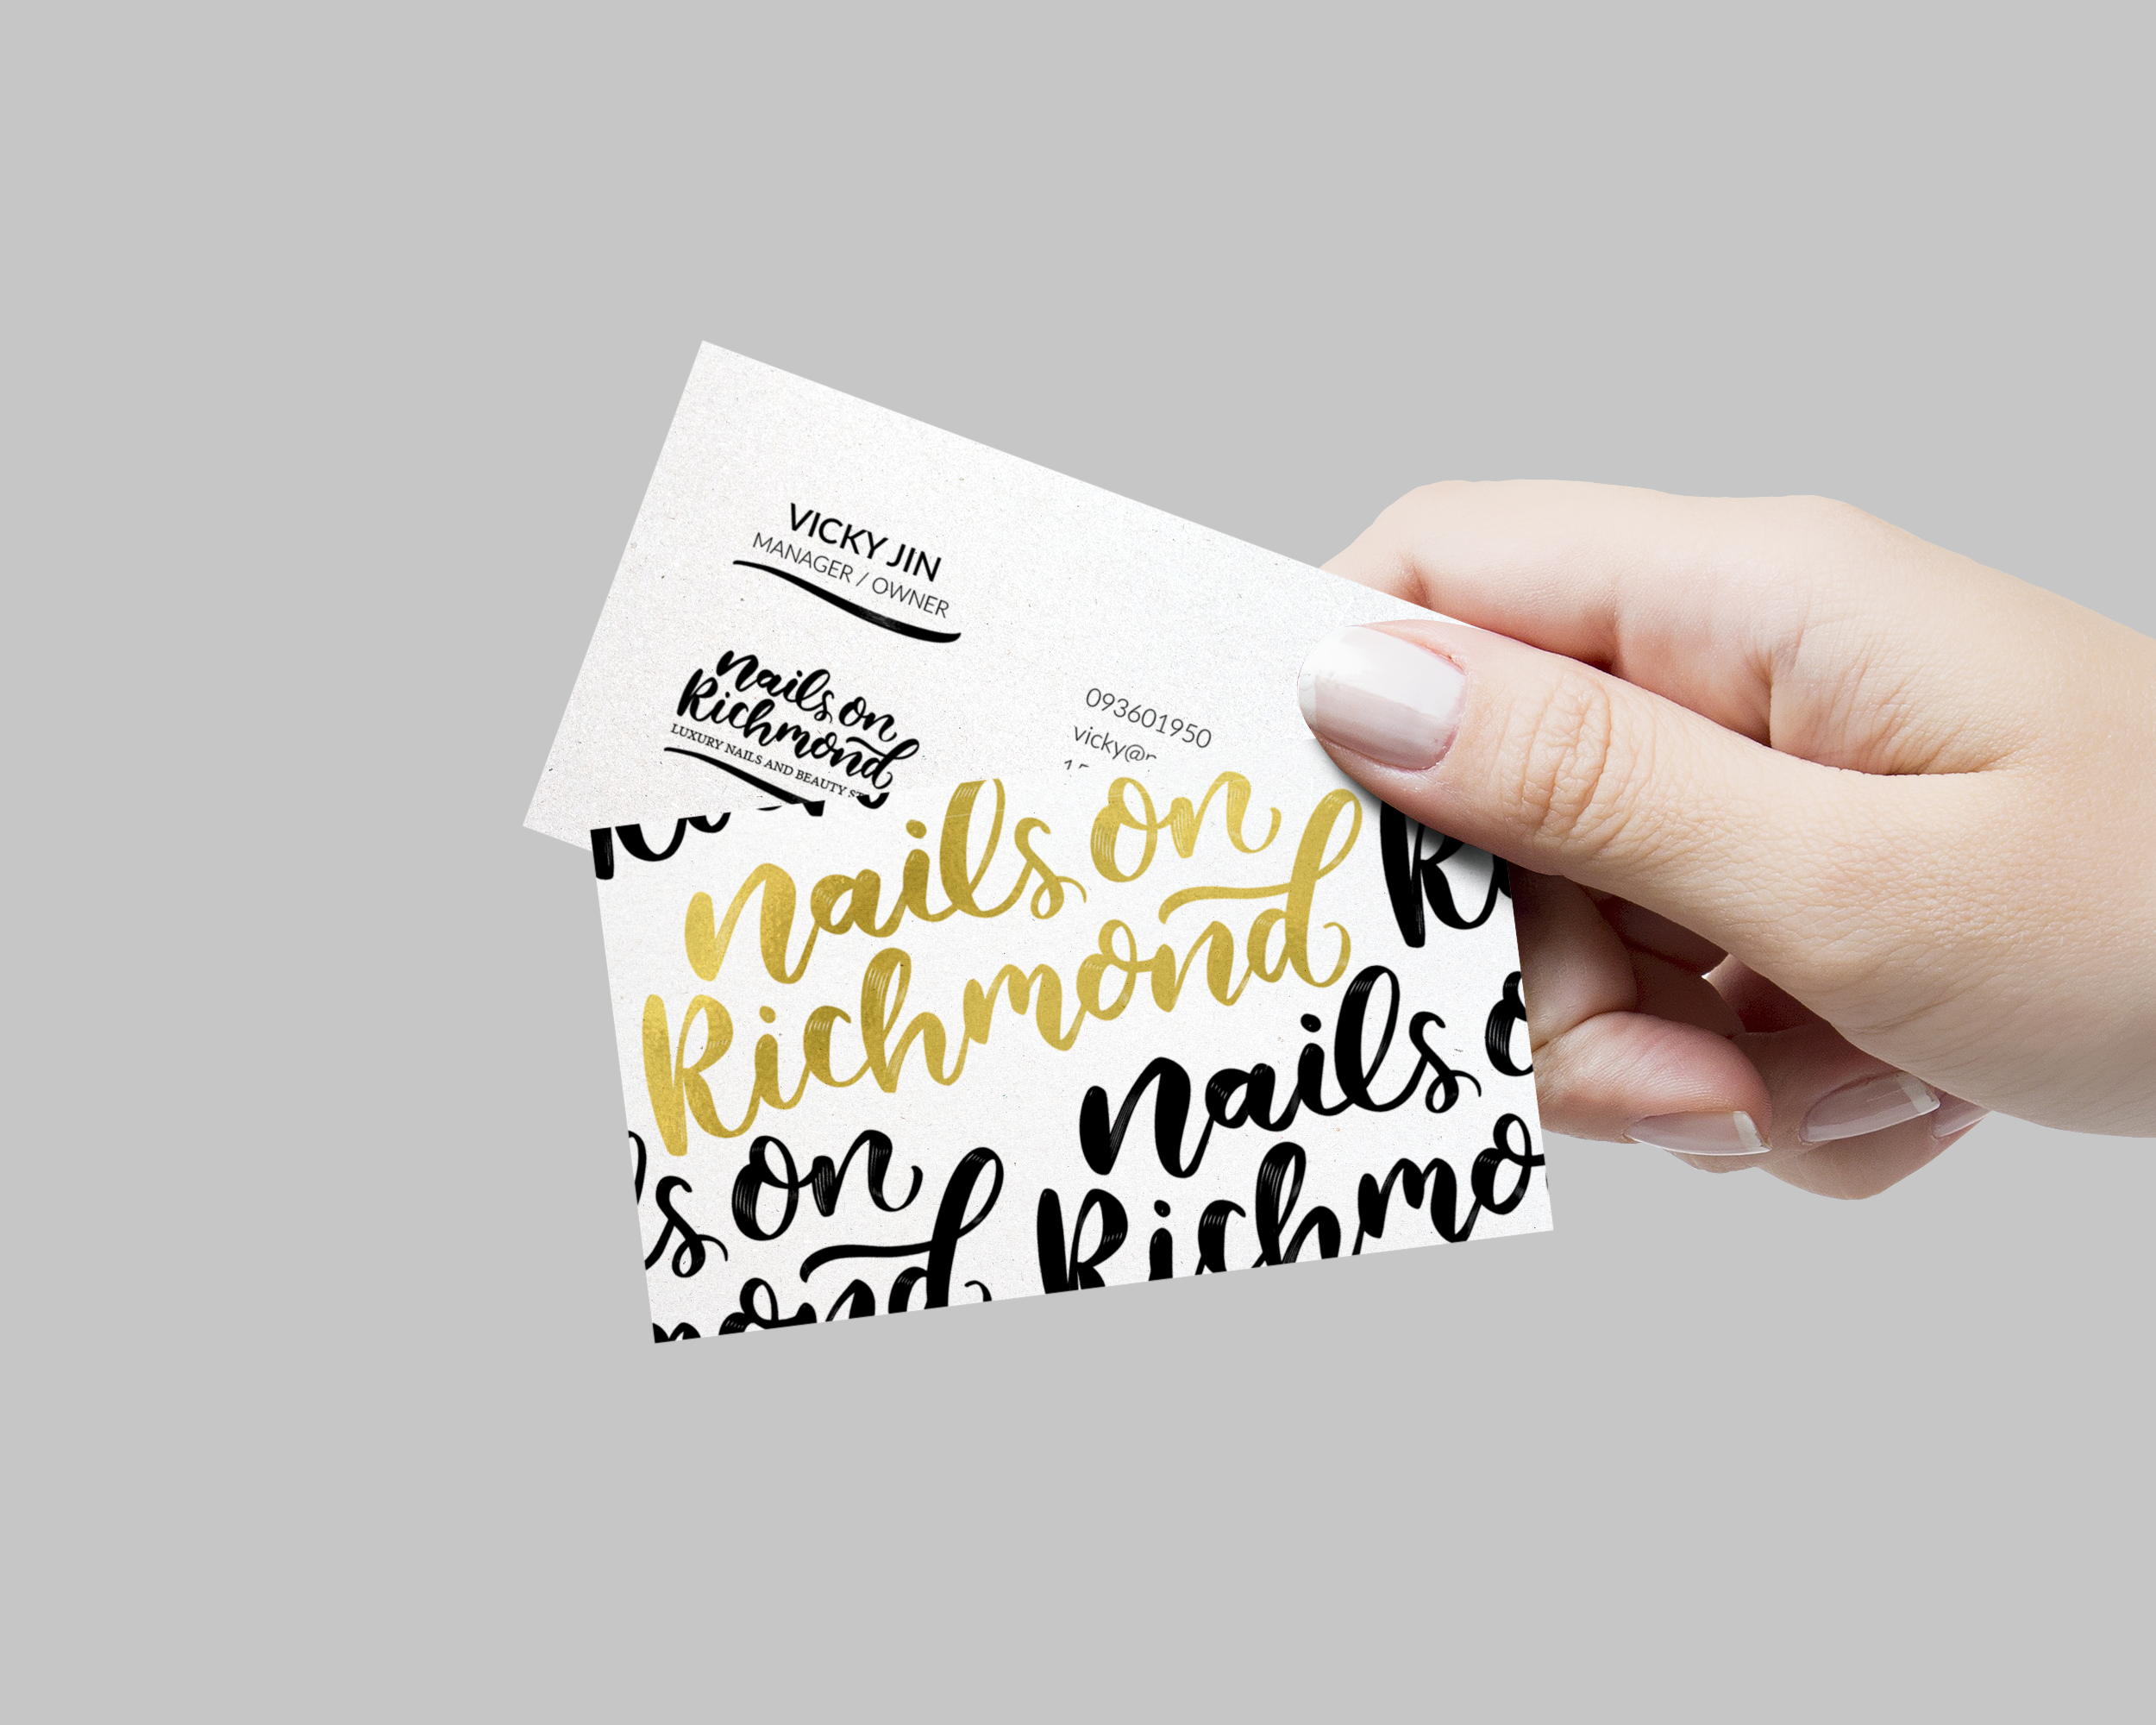 Hand holding two business cards